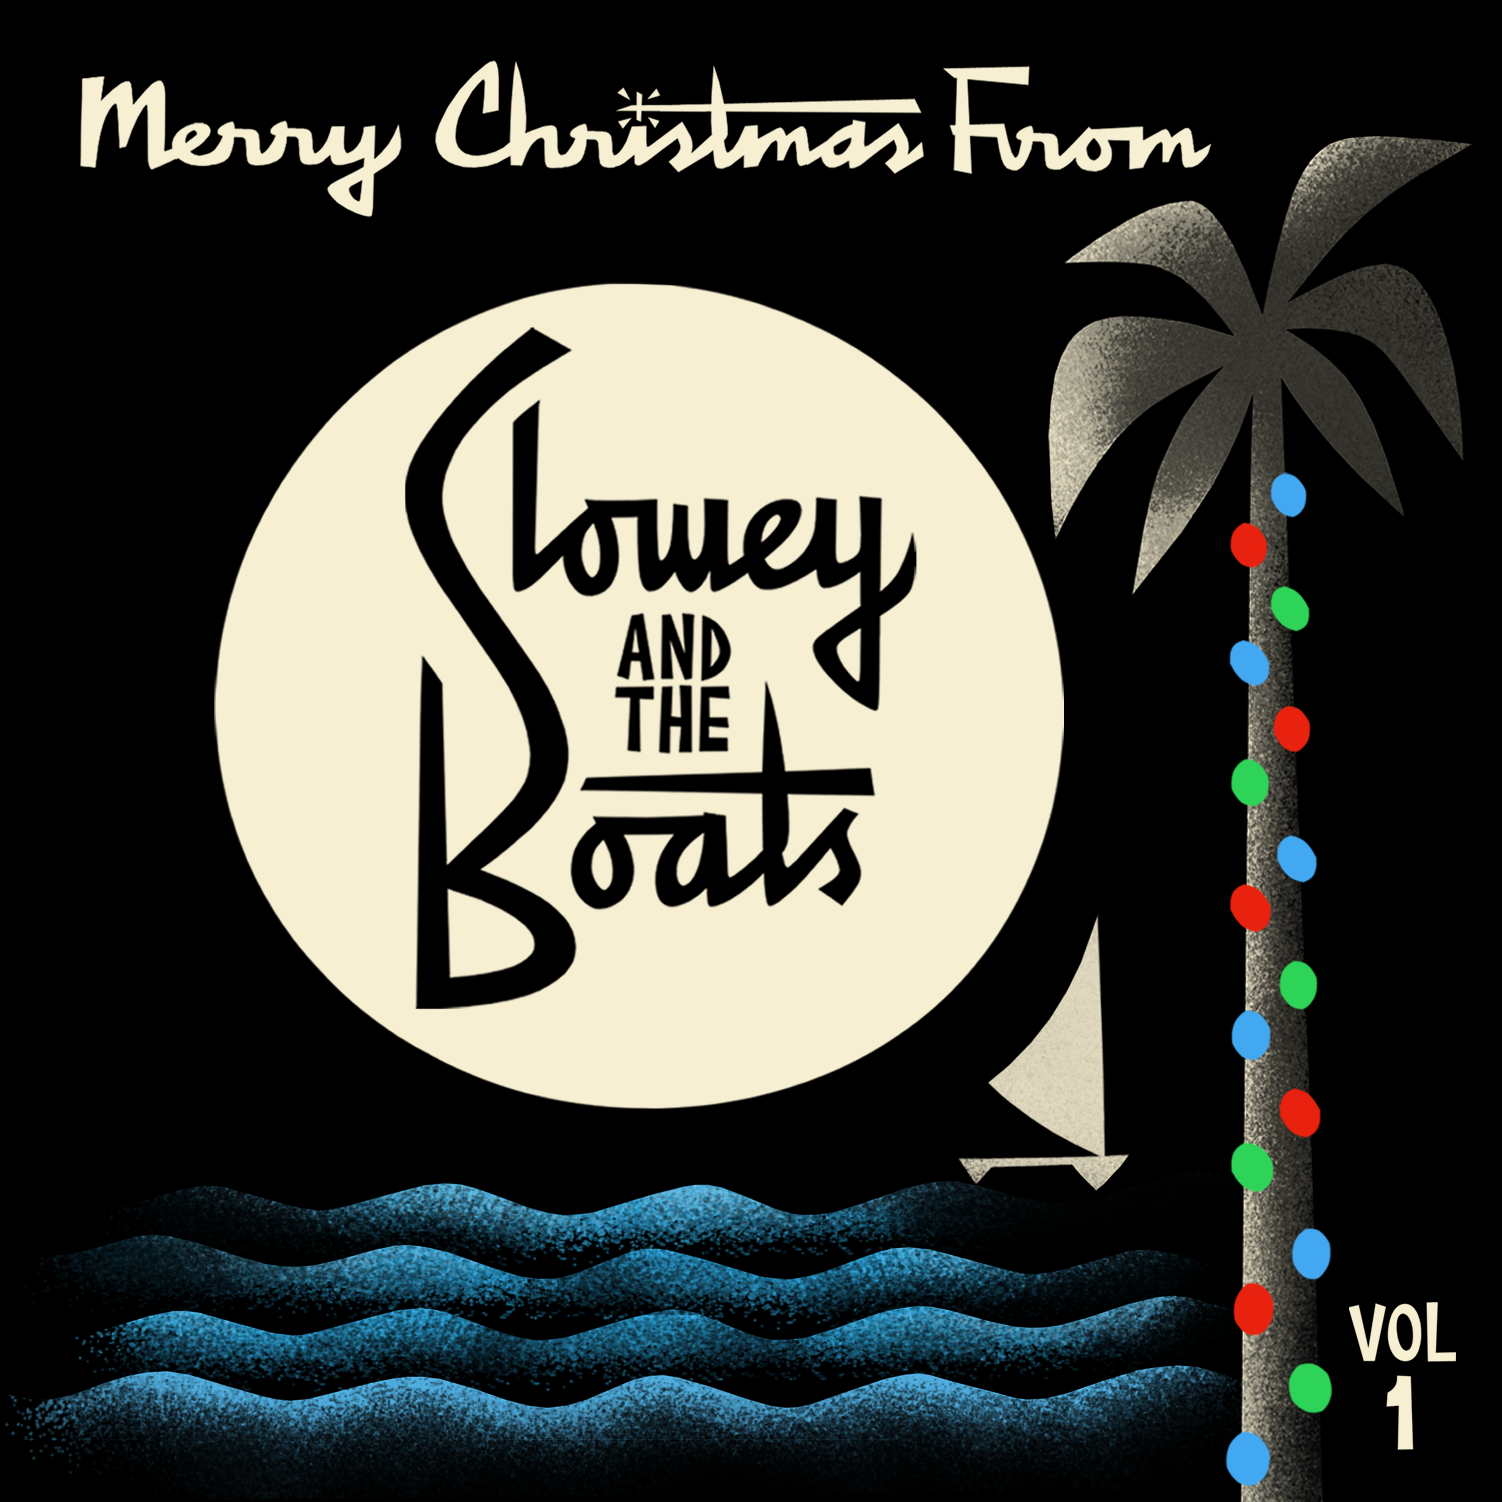 Catching a wave radio show all christmas show catching a wave 12 25 17 hexwebz Image collections